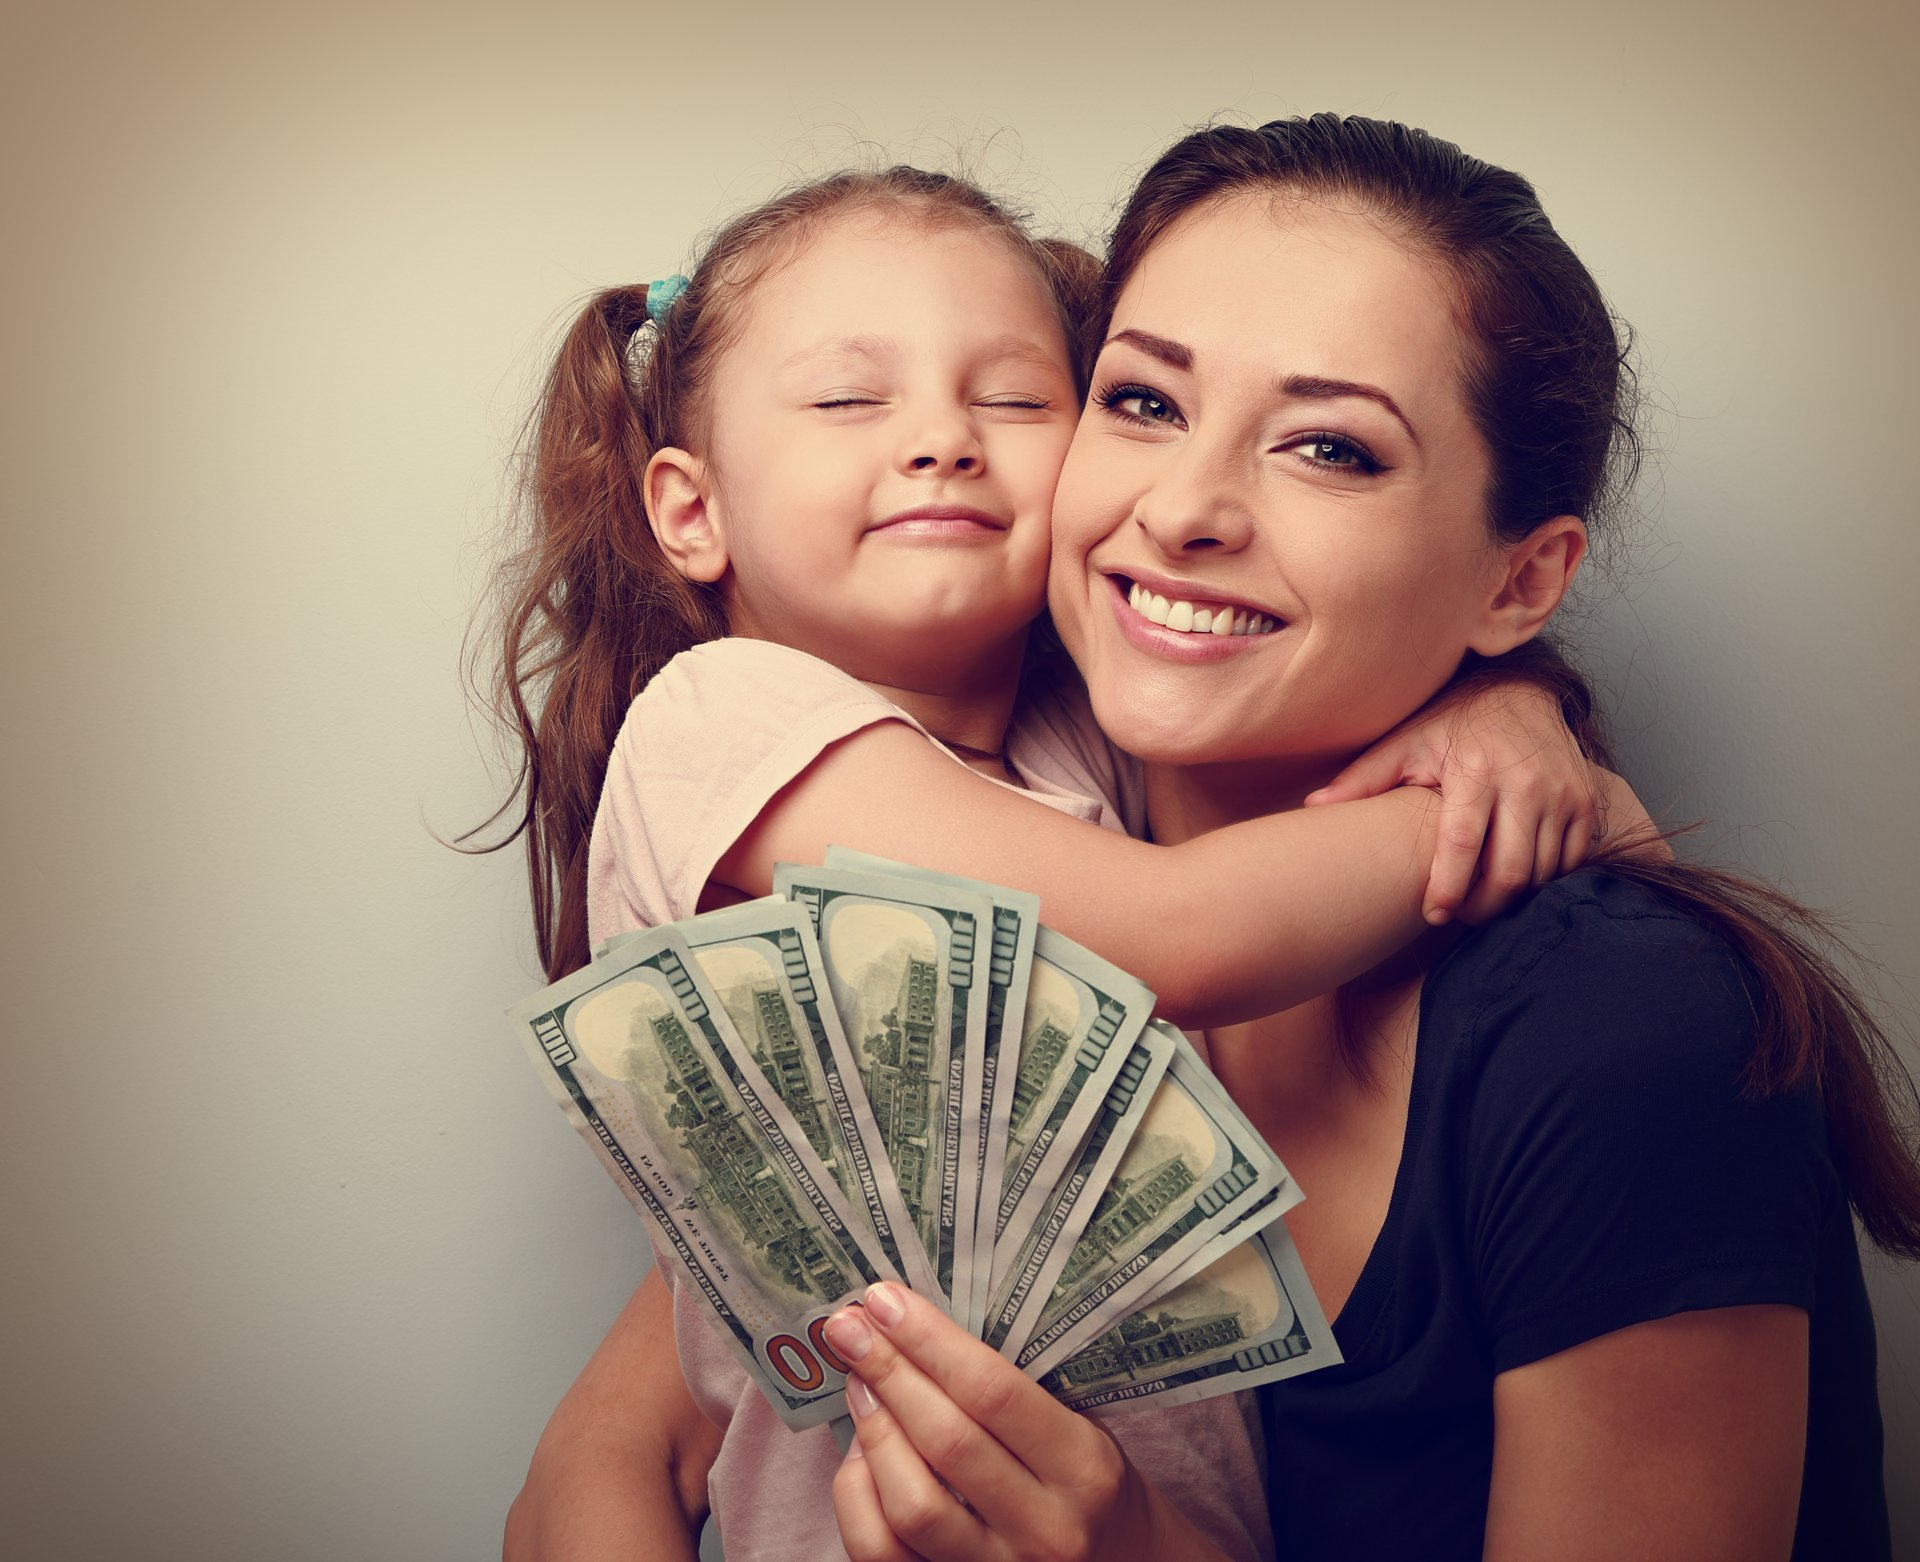 Smiling mother and happy daughter with dollars.